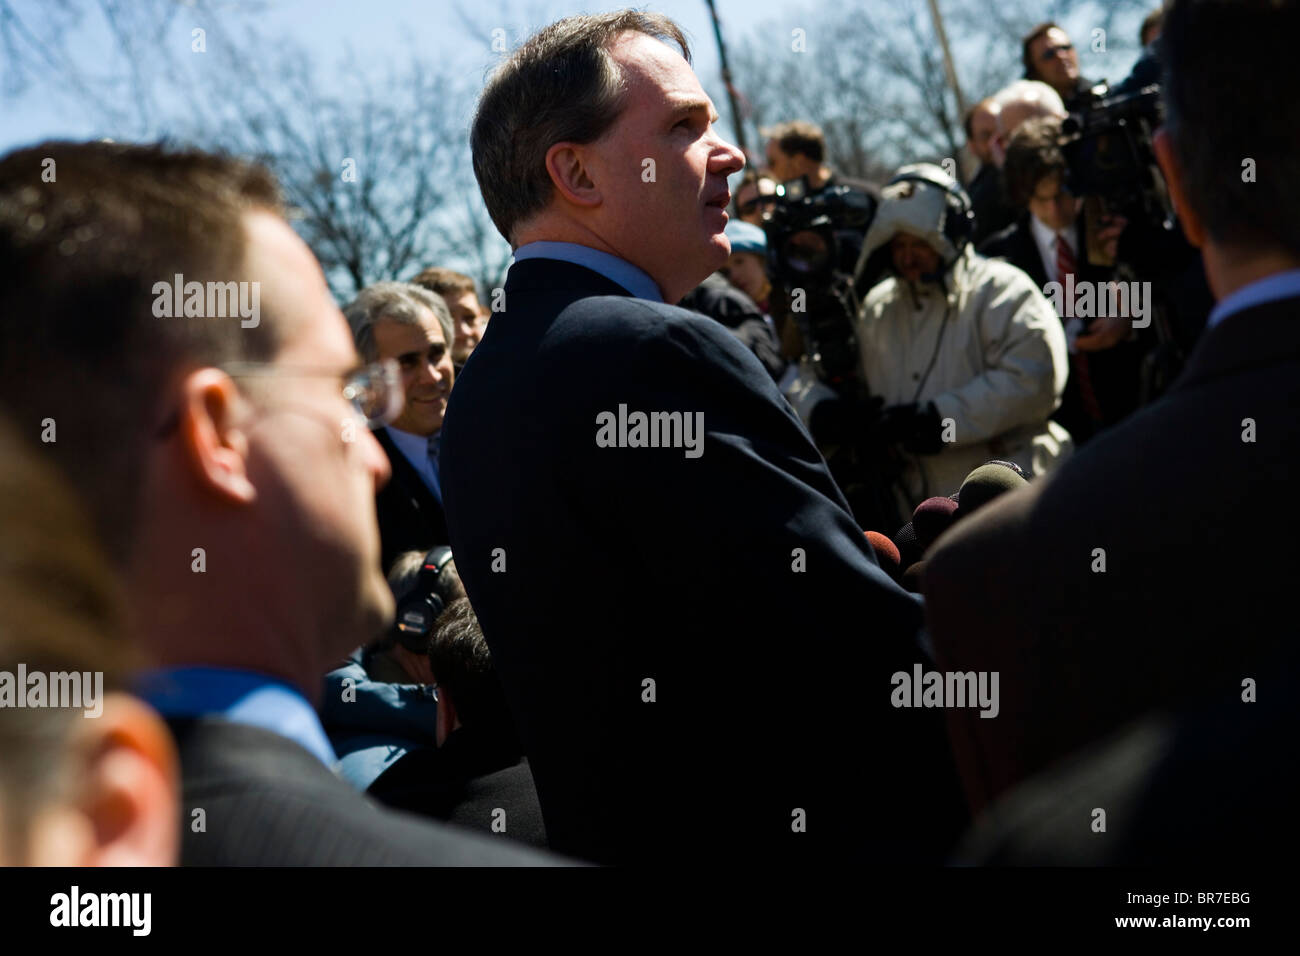 Special Counsel Patrick Fitzgerald speaks to the media follwing guilty verdicts in the Libby trial - Stock Image